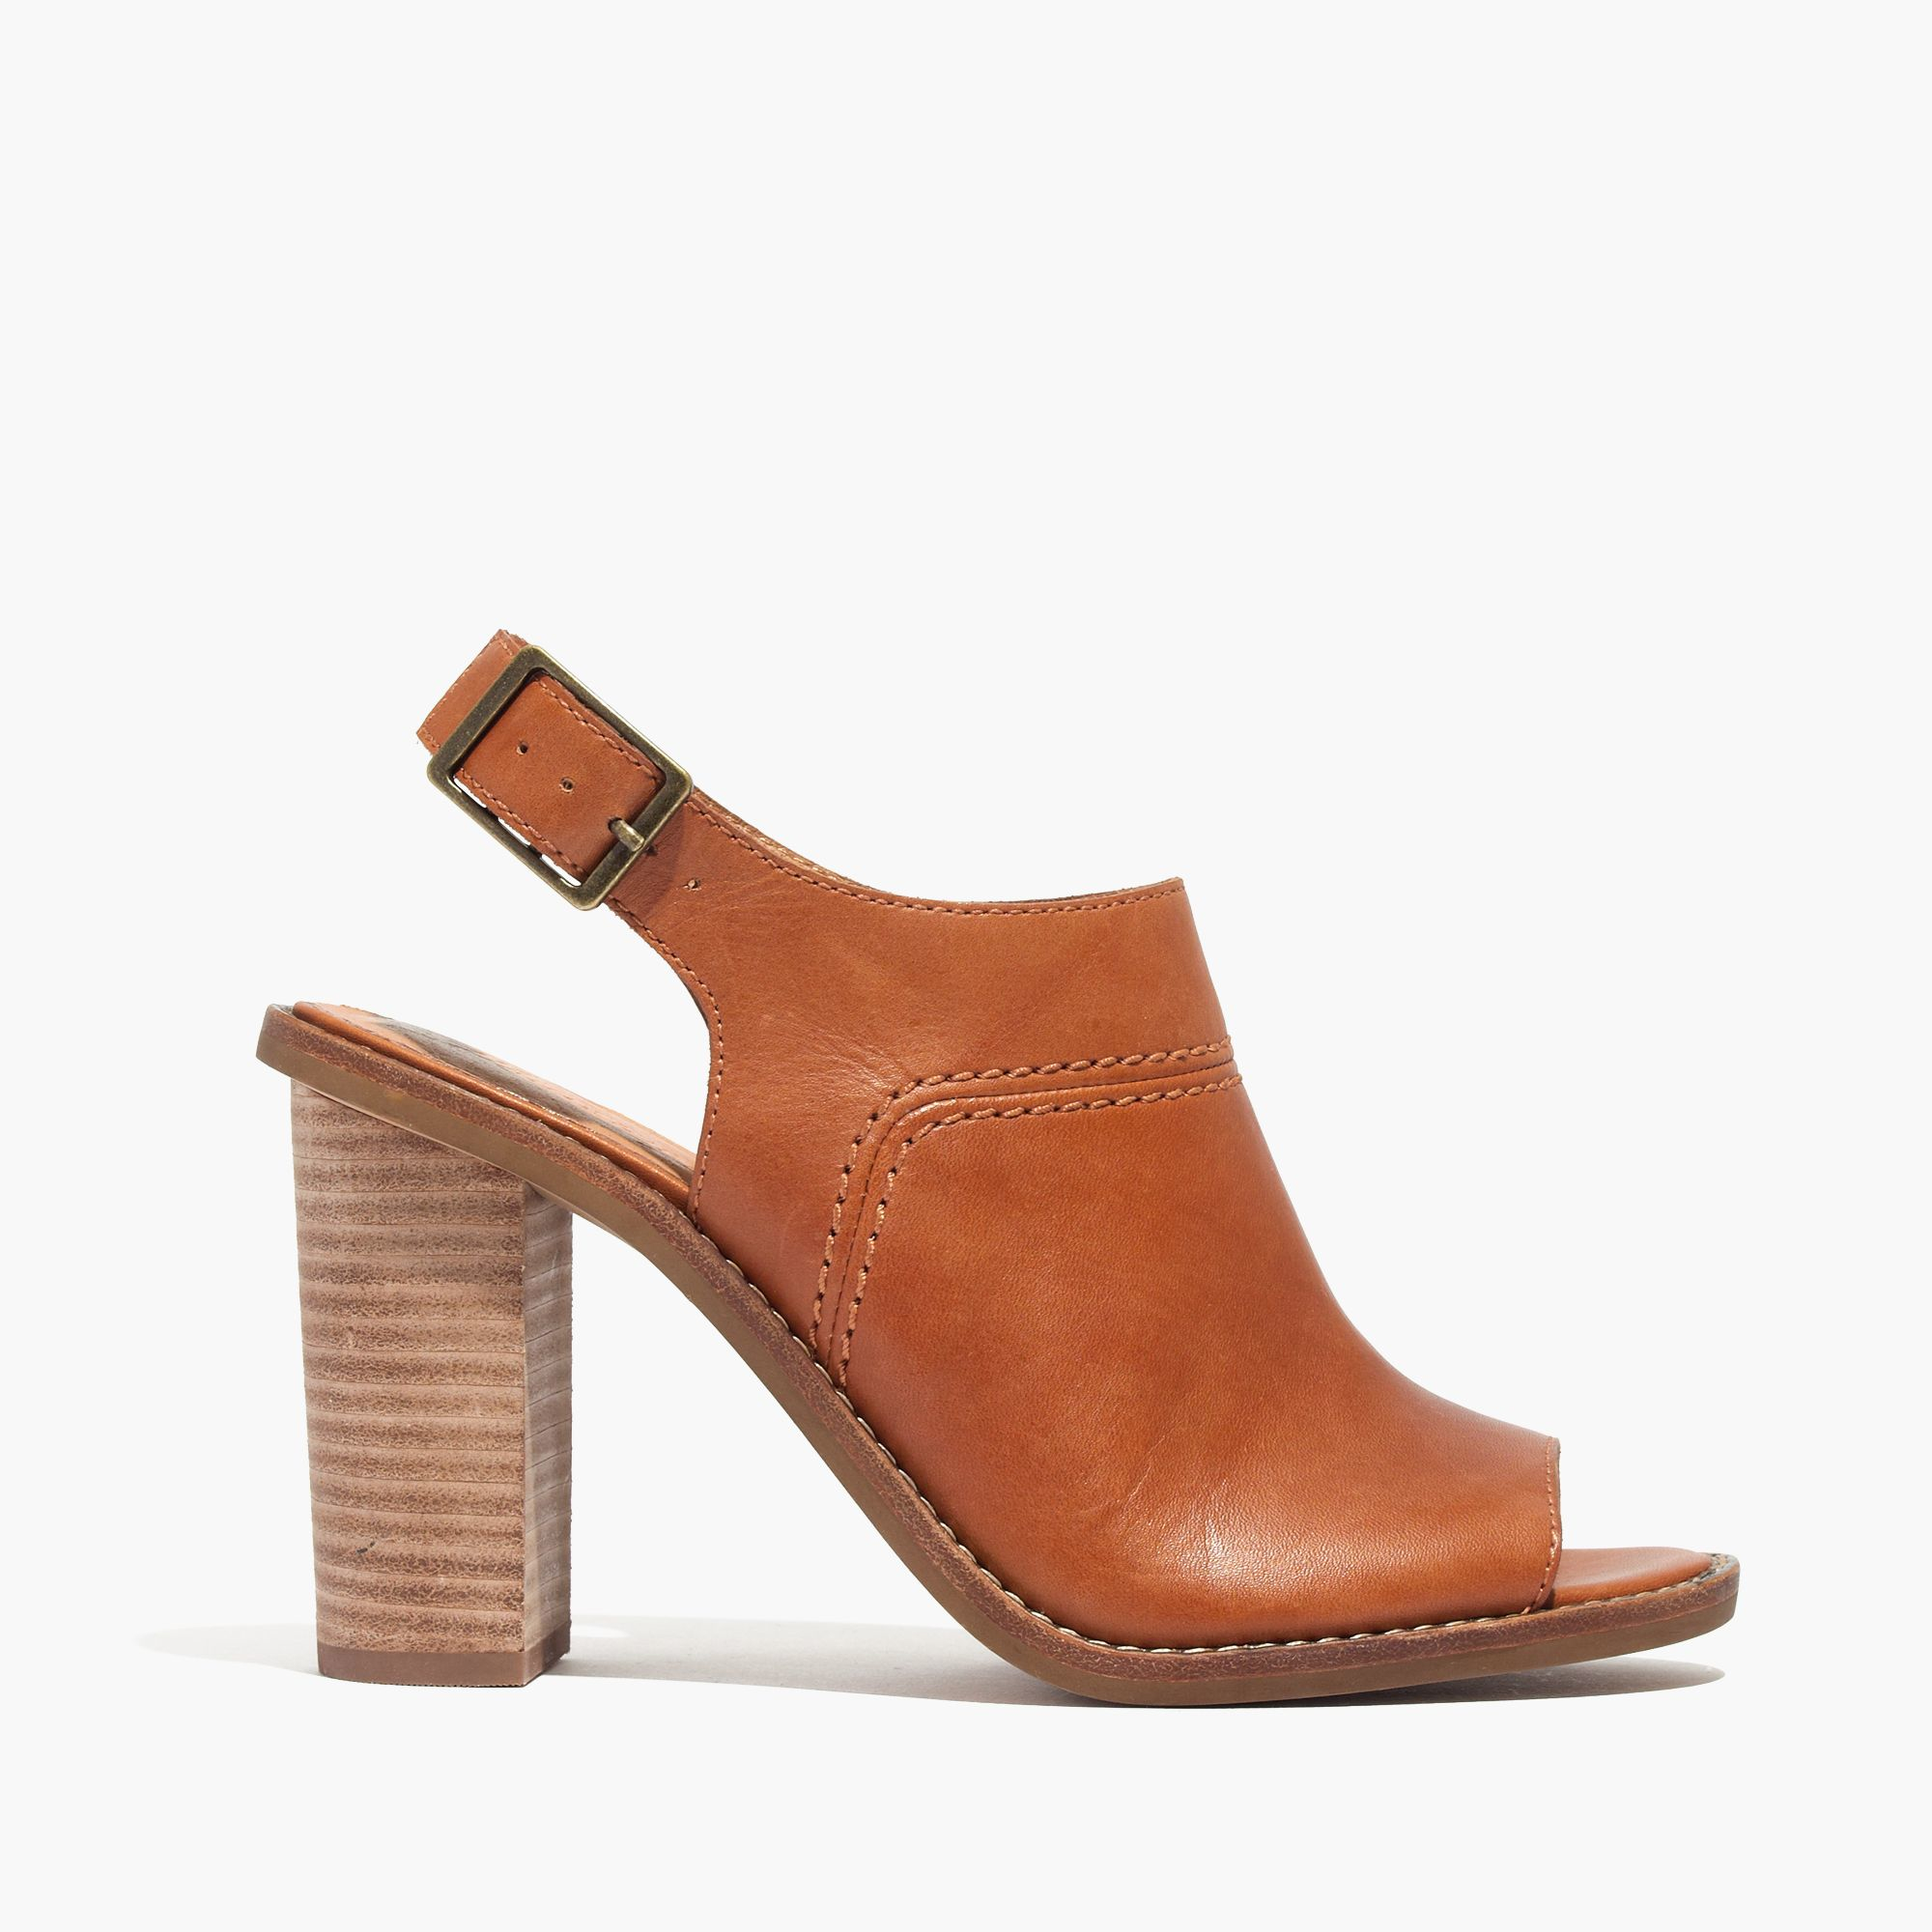 ac99373d89b Lyst - Madewell The Marie Sandal in Brown